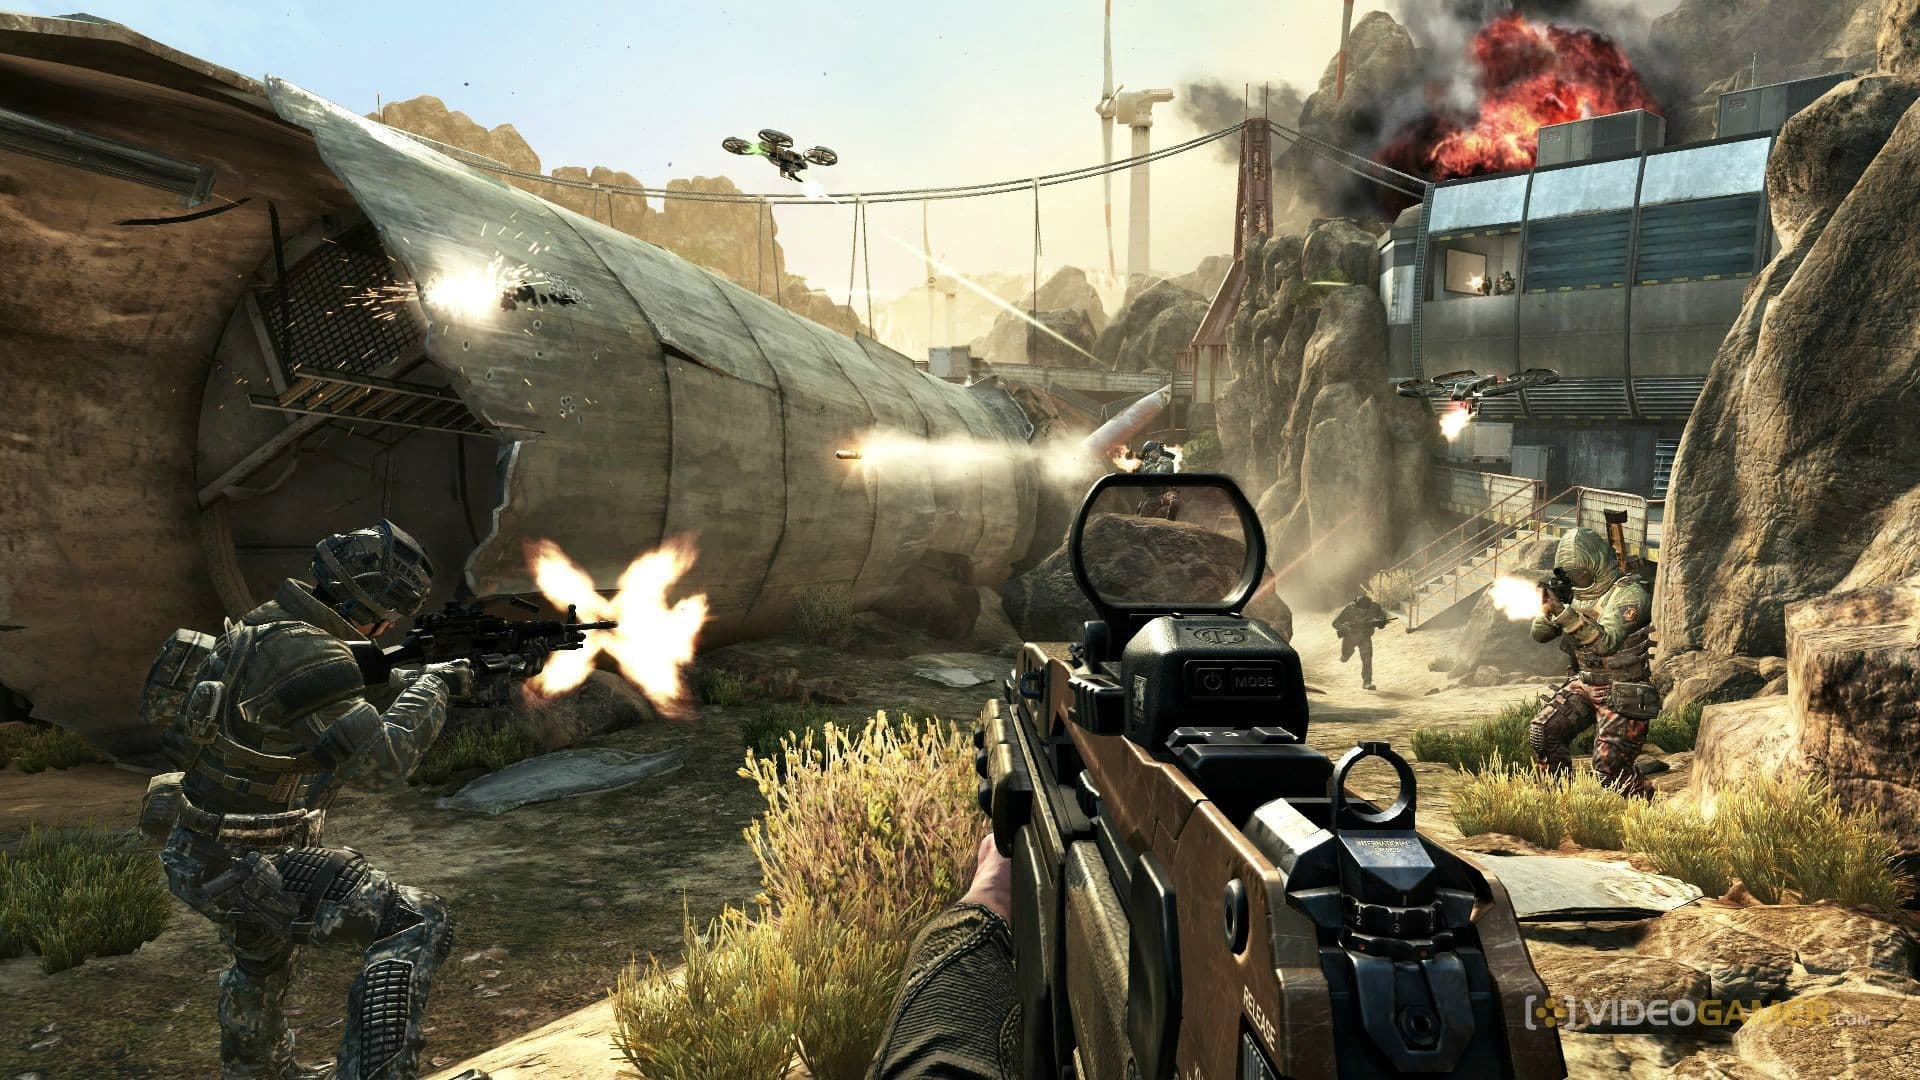 call of duty black ops 2 açılmıyor windows 8.1